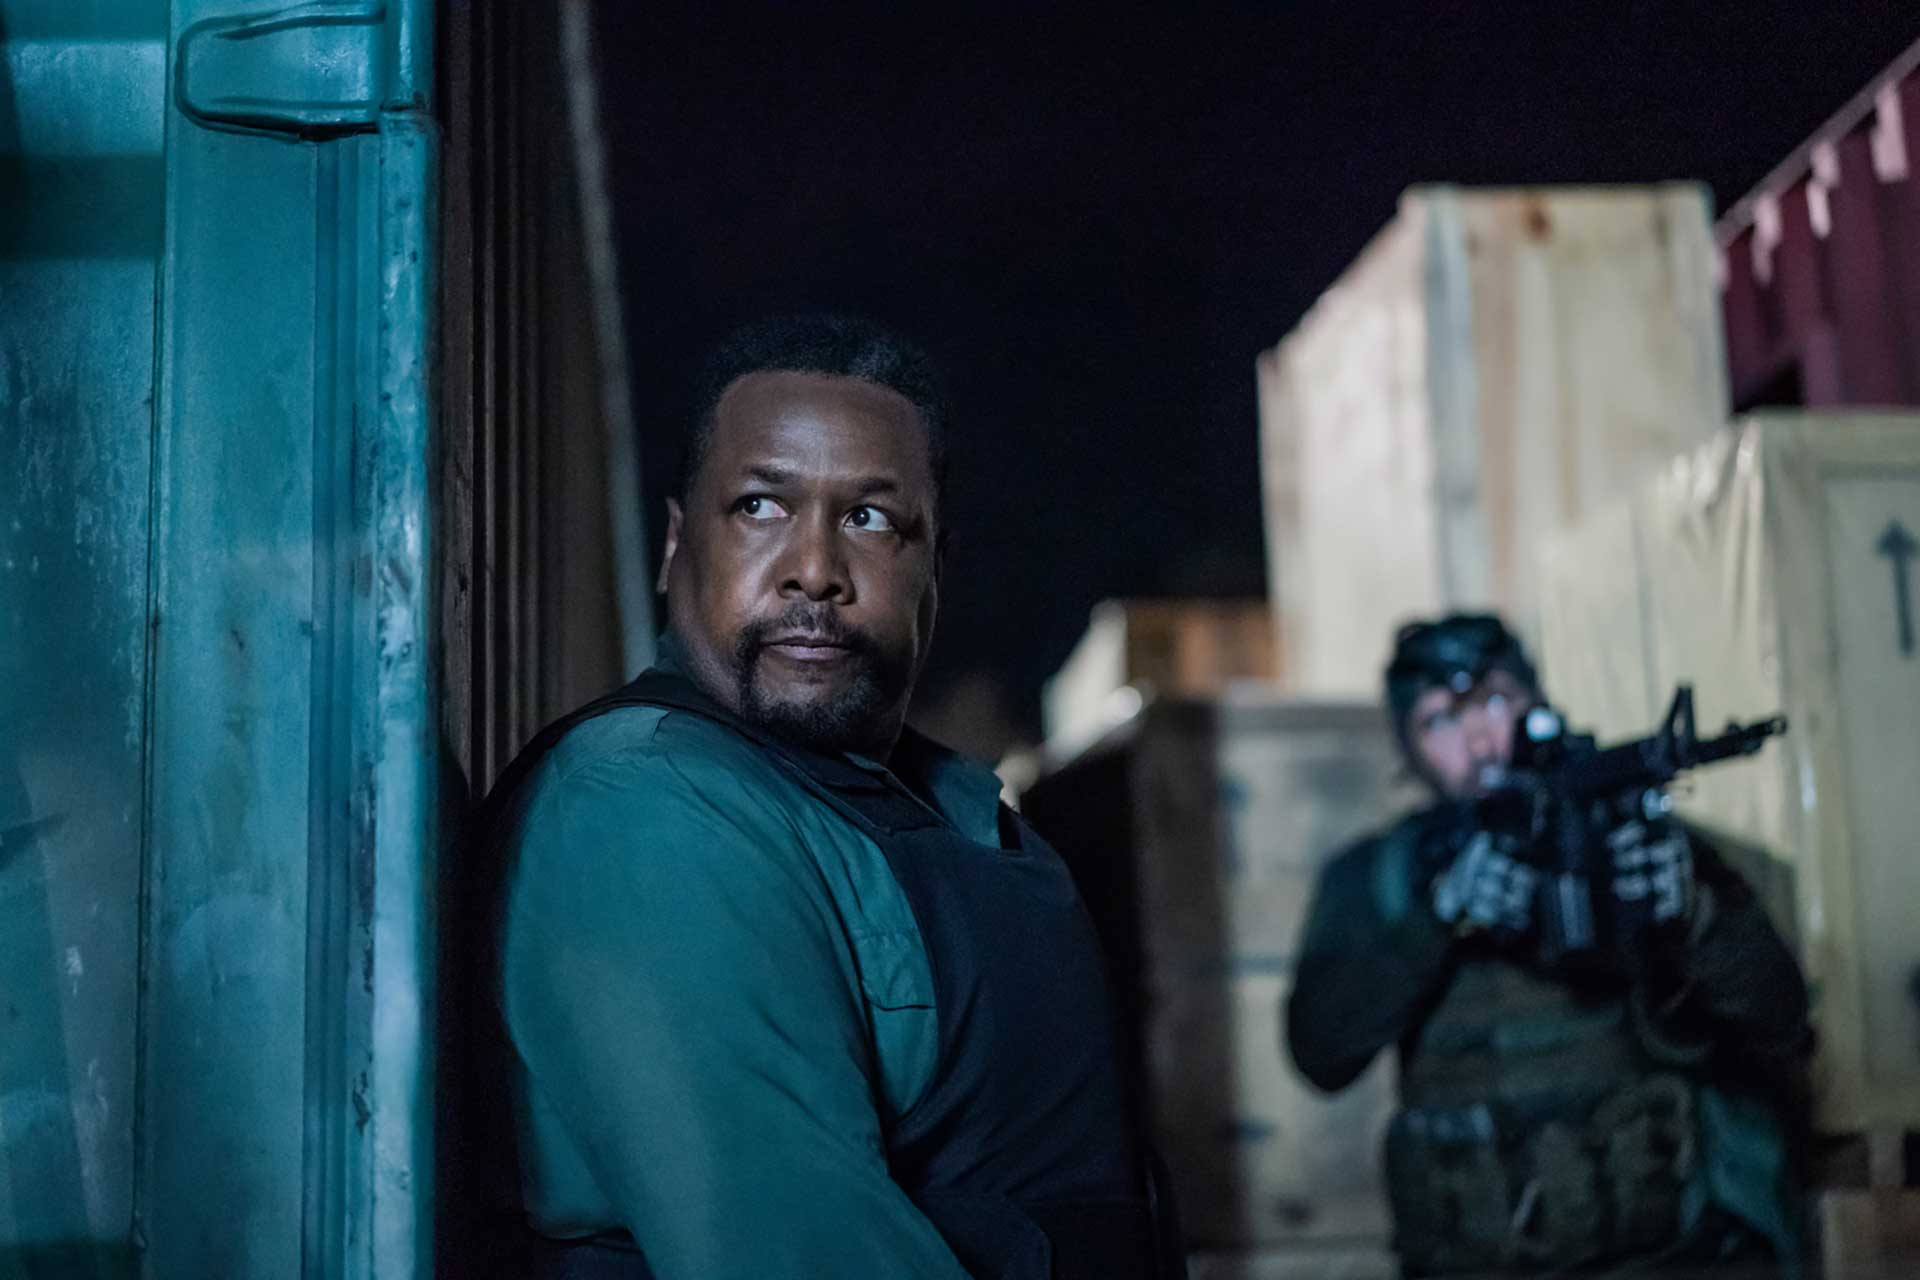 Jack Ryan Season 2 Episode 3 Still 2